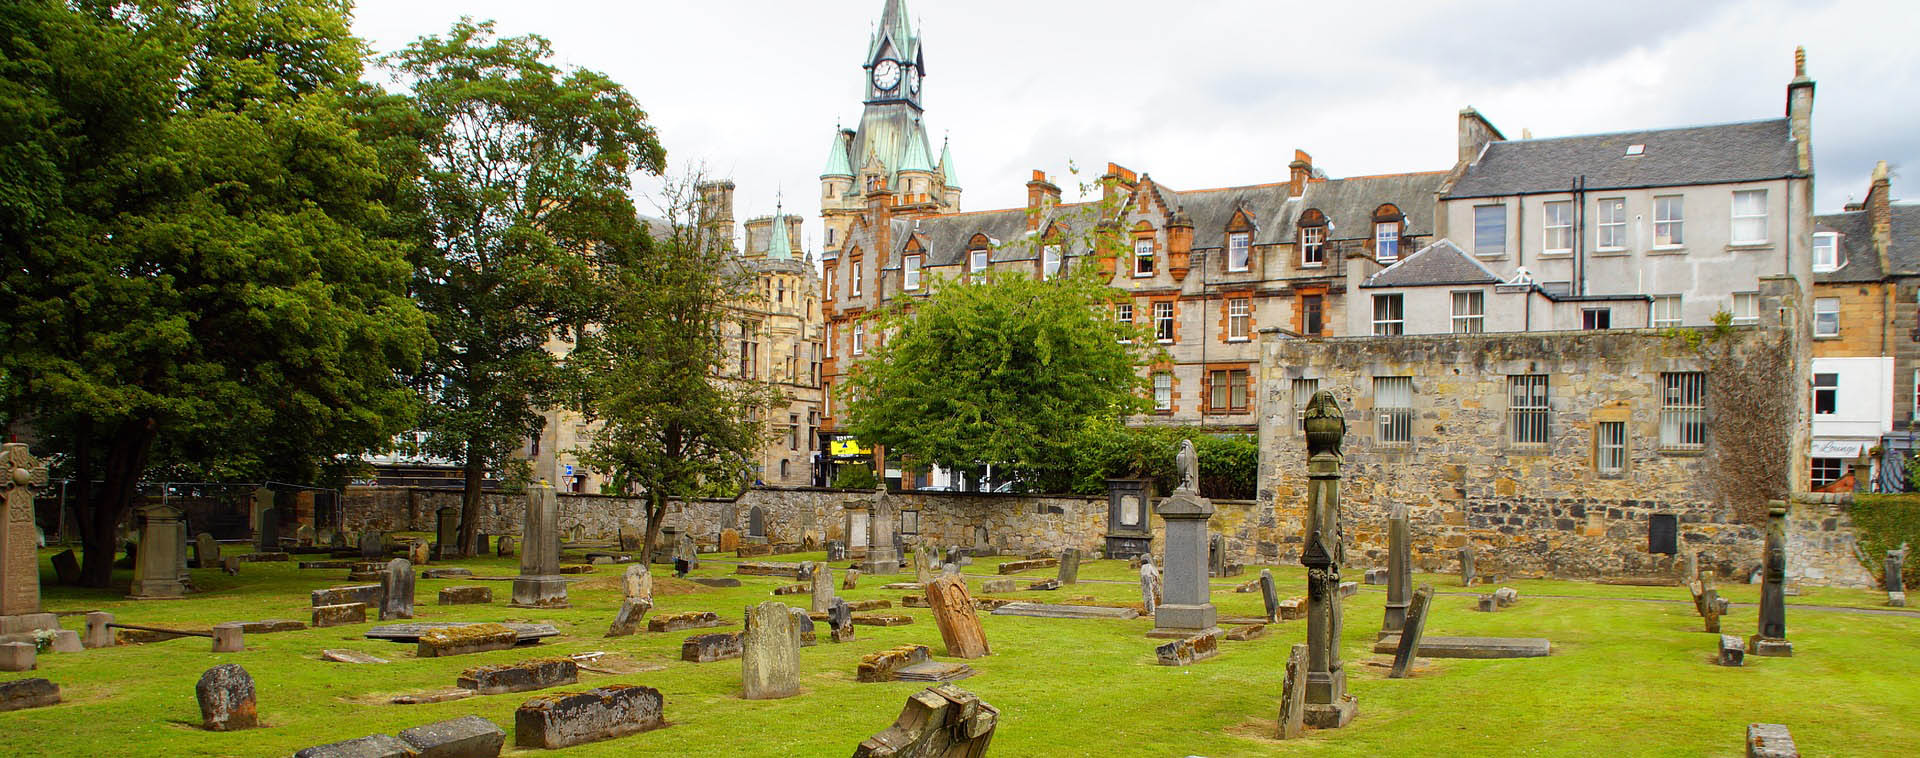 Quirky Treasure Trails - Explore a real slice of Scottish history, hot on the Trail of Robert the Bruce!